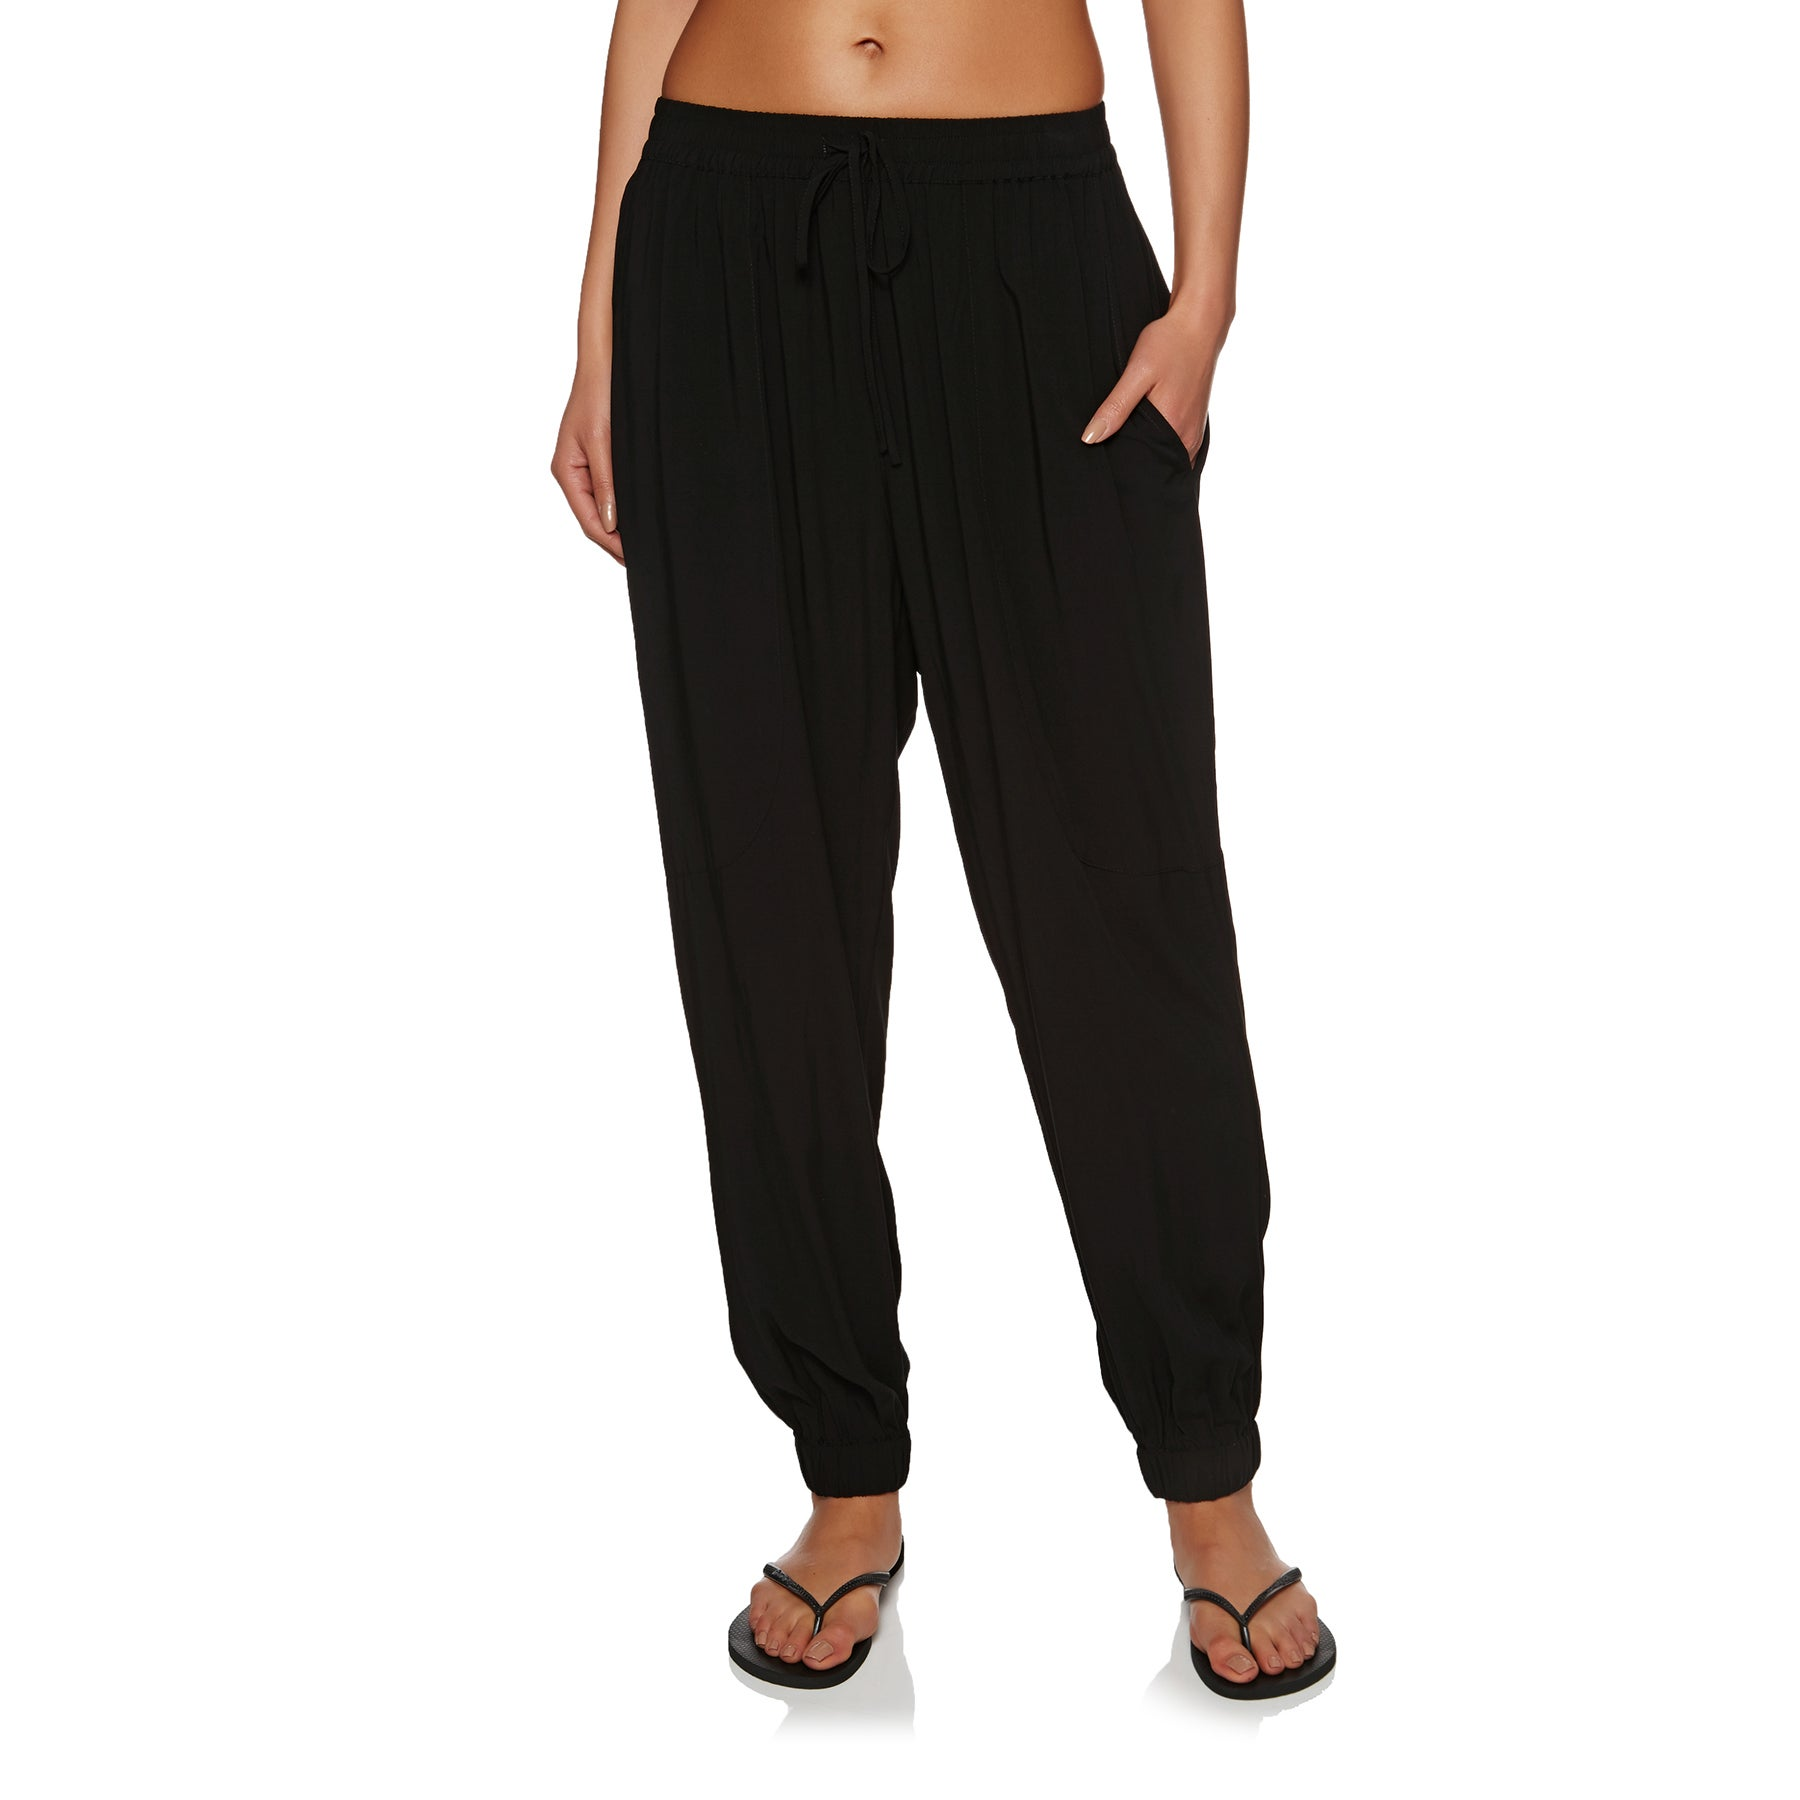 Seafolly Voile Womens Trousers - Black